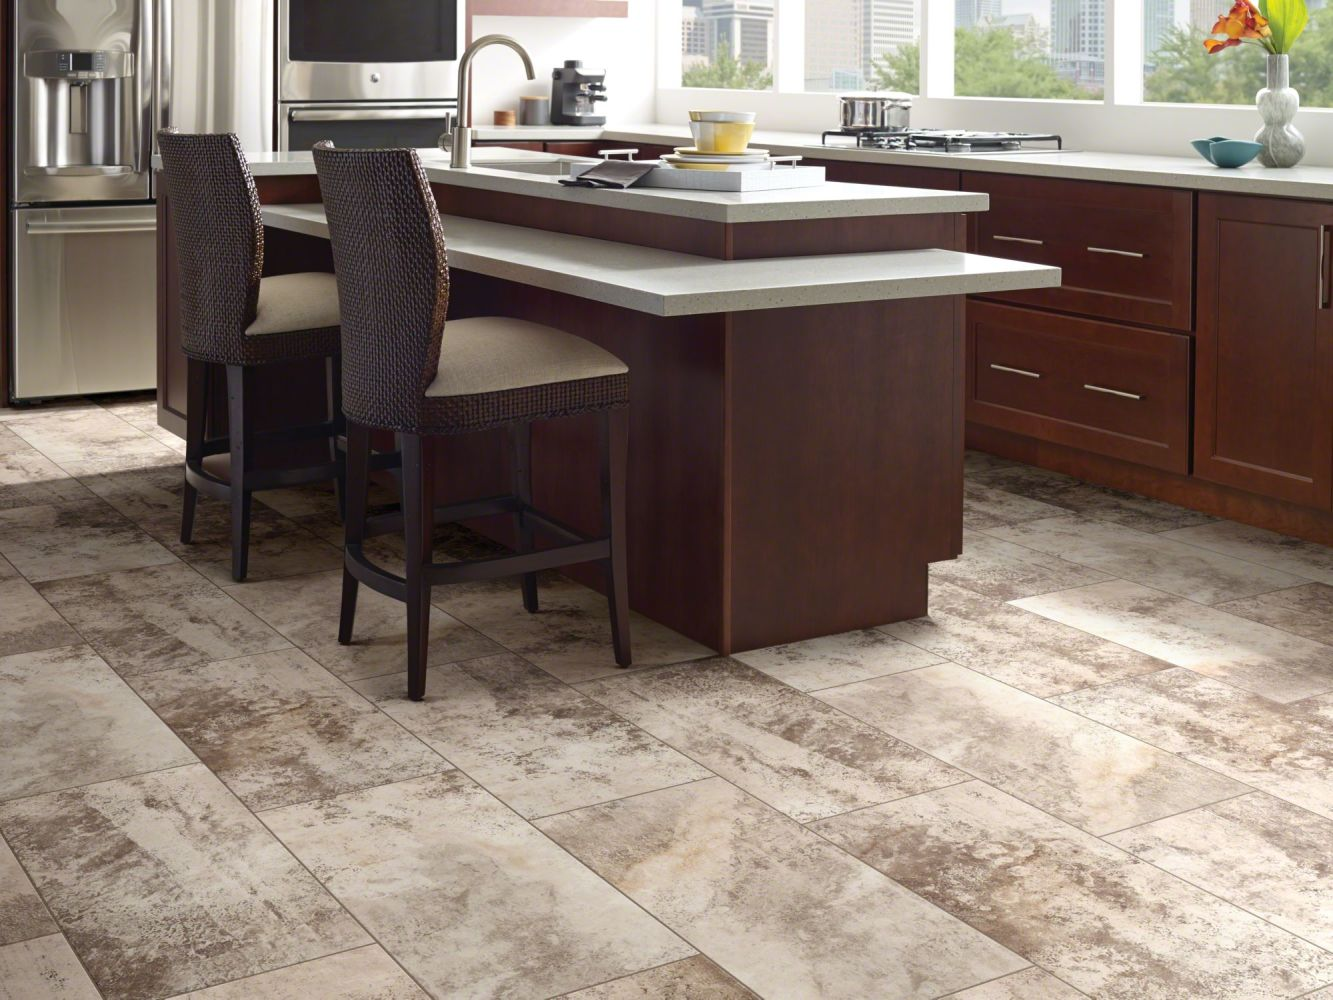 Shaw Floors Vinyl Residential Fairmount Ti 20 Laurel Hill 00702_0414V